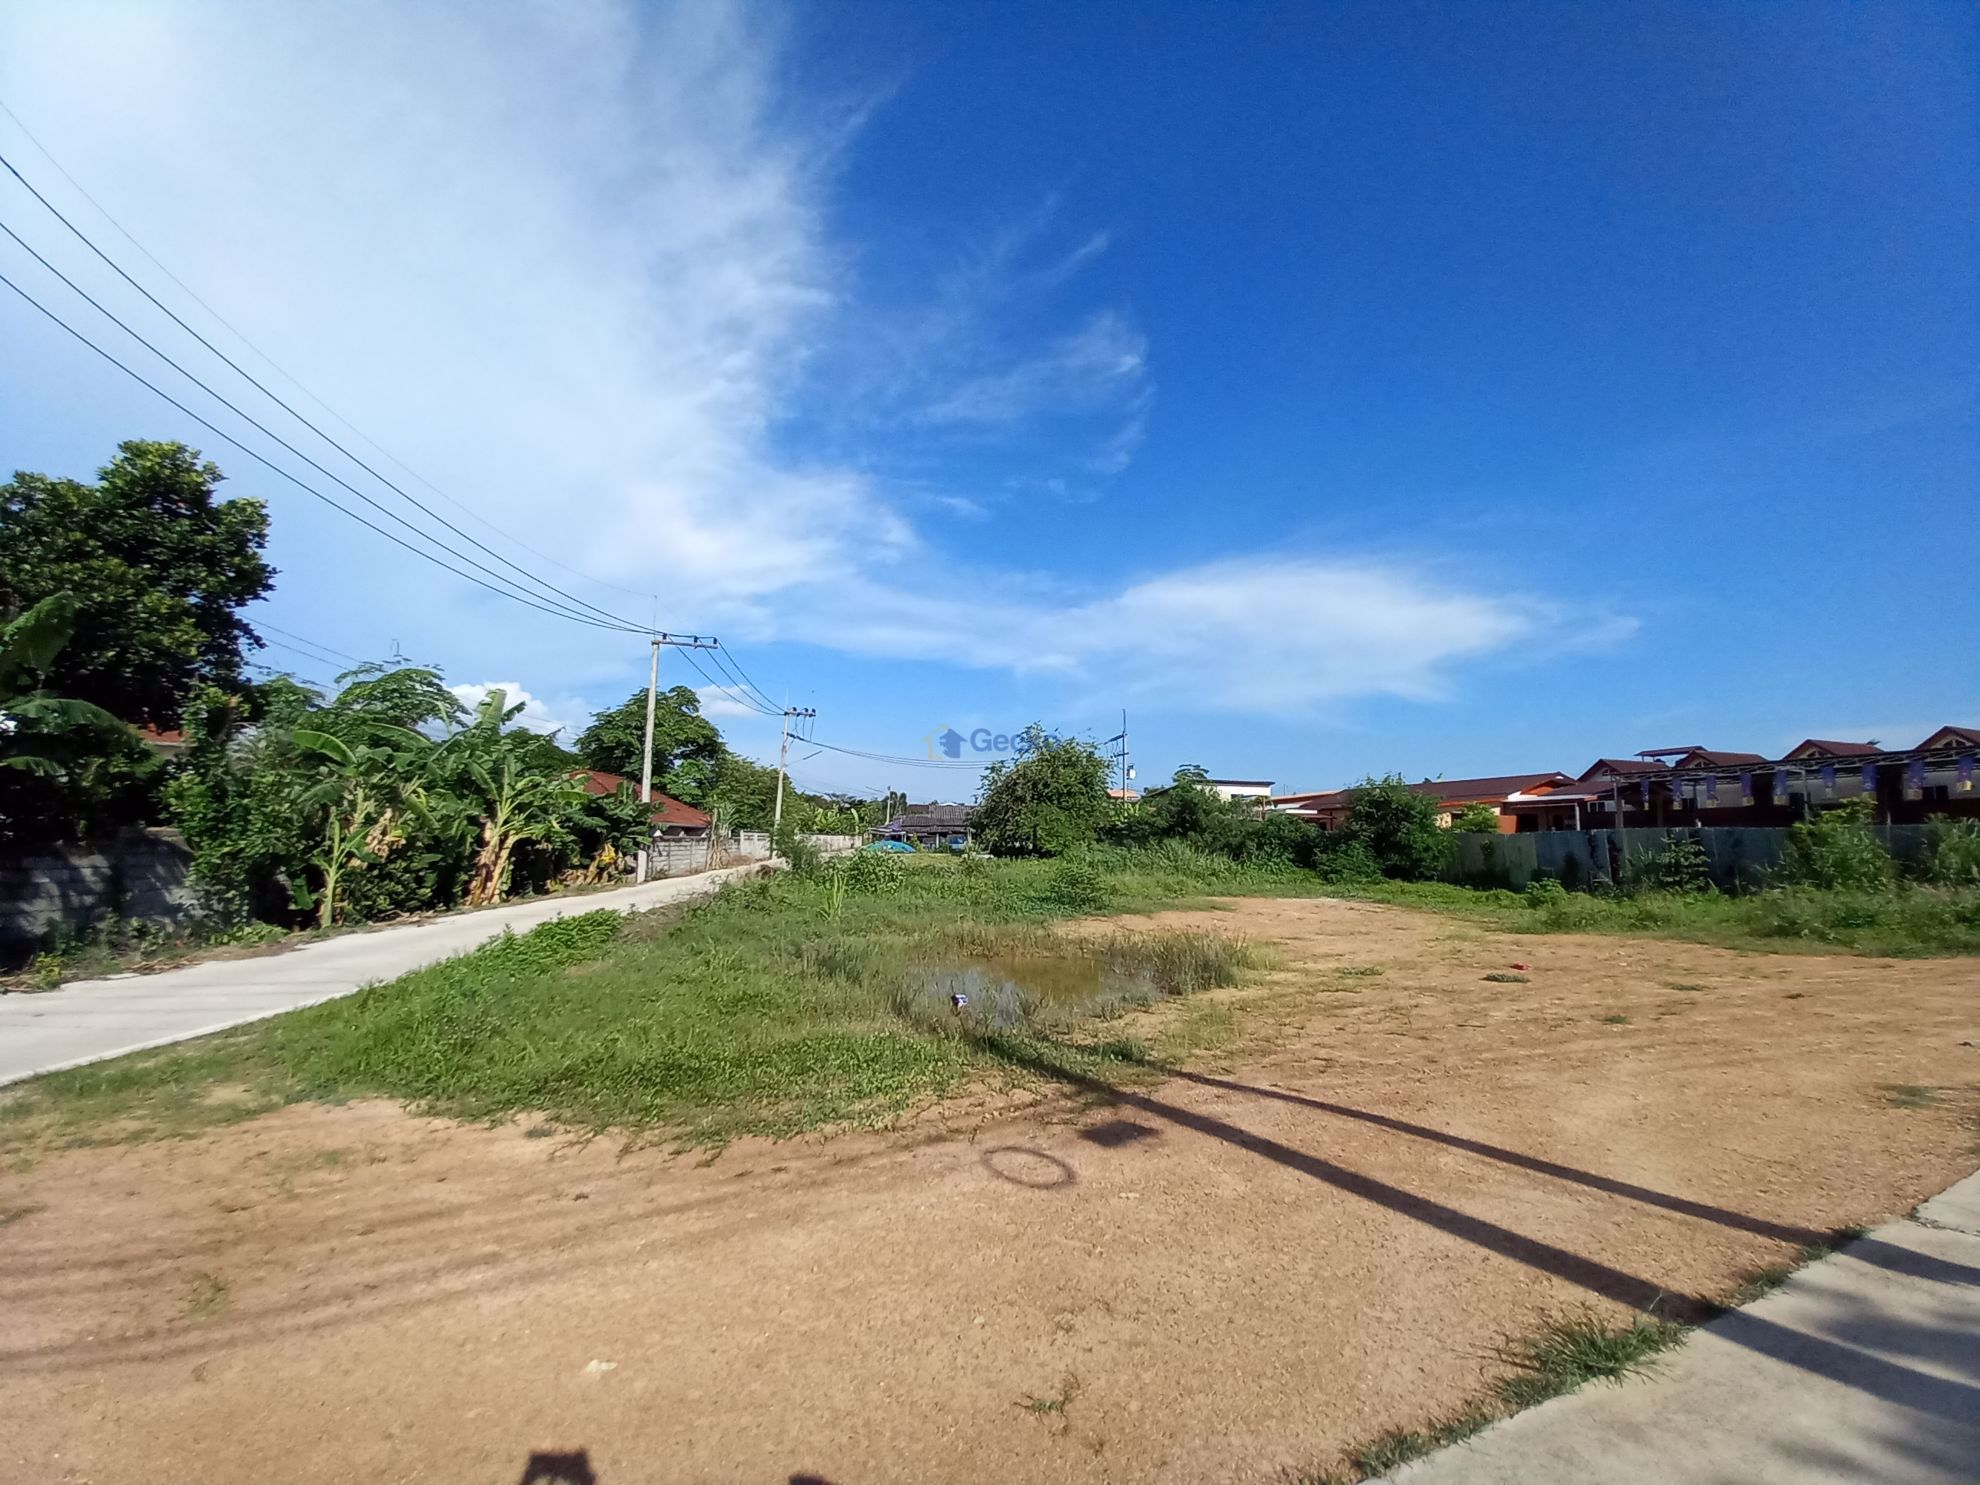 Picture of Soi Janmanee, Chak Ngaew Road L009245